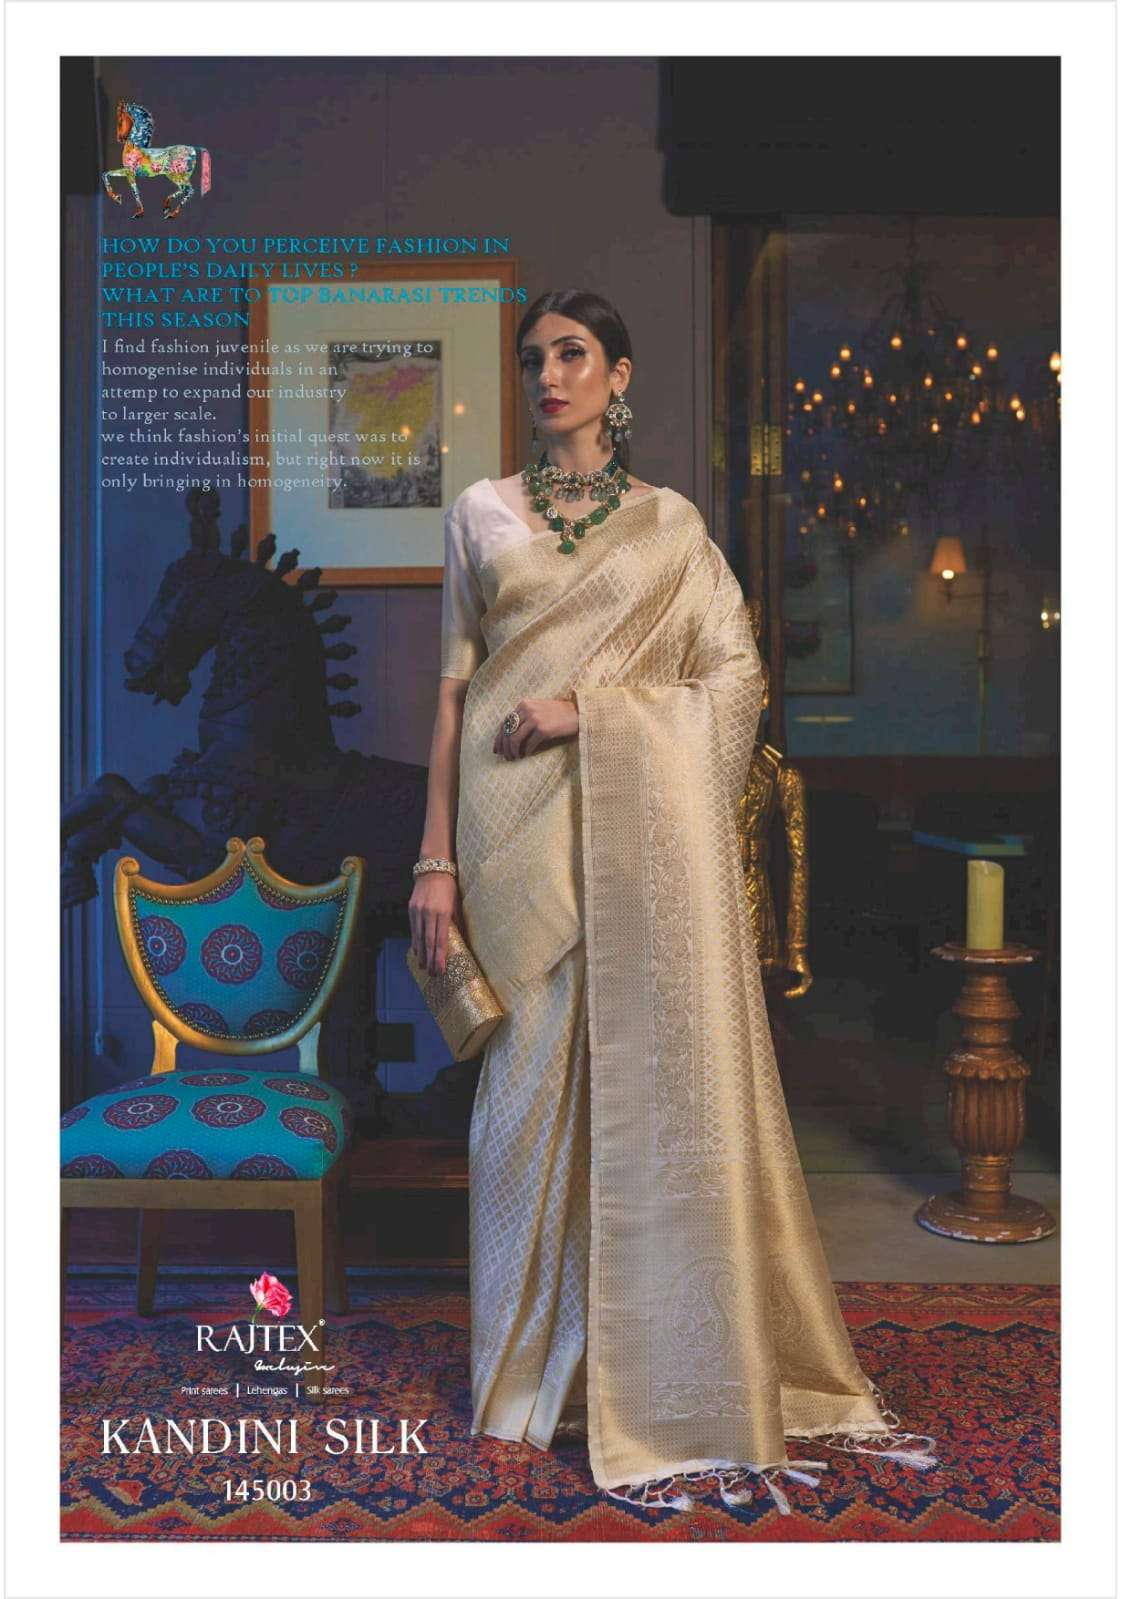 KANDINI SILK PARTY WEAR SAREE COLLECTION AT WHOLESALE RATE